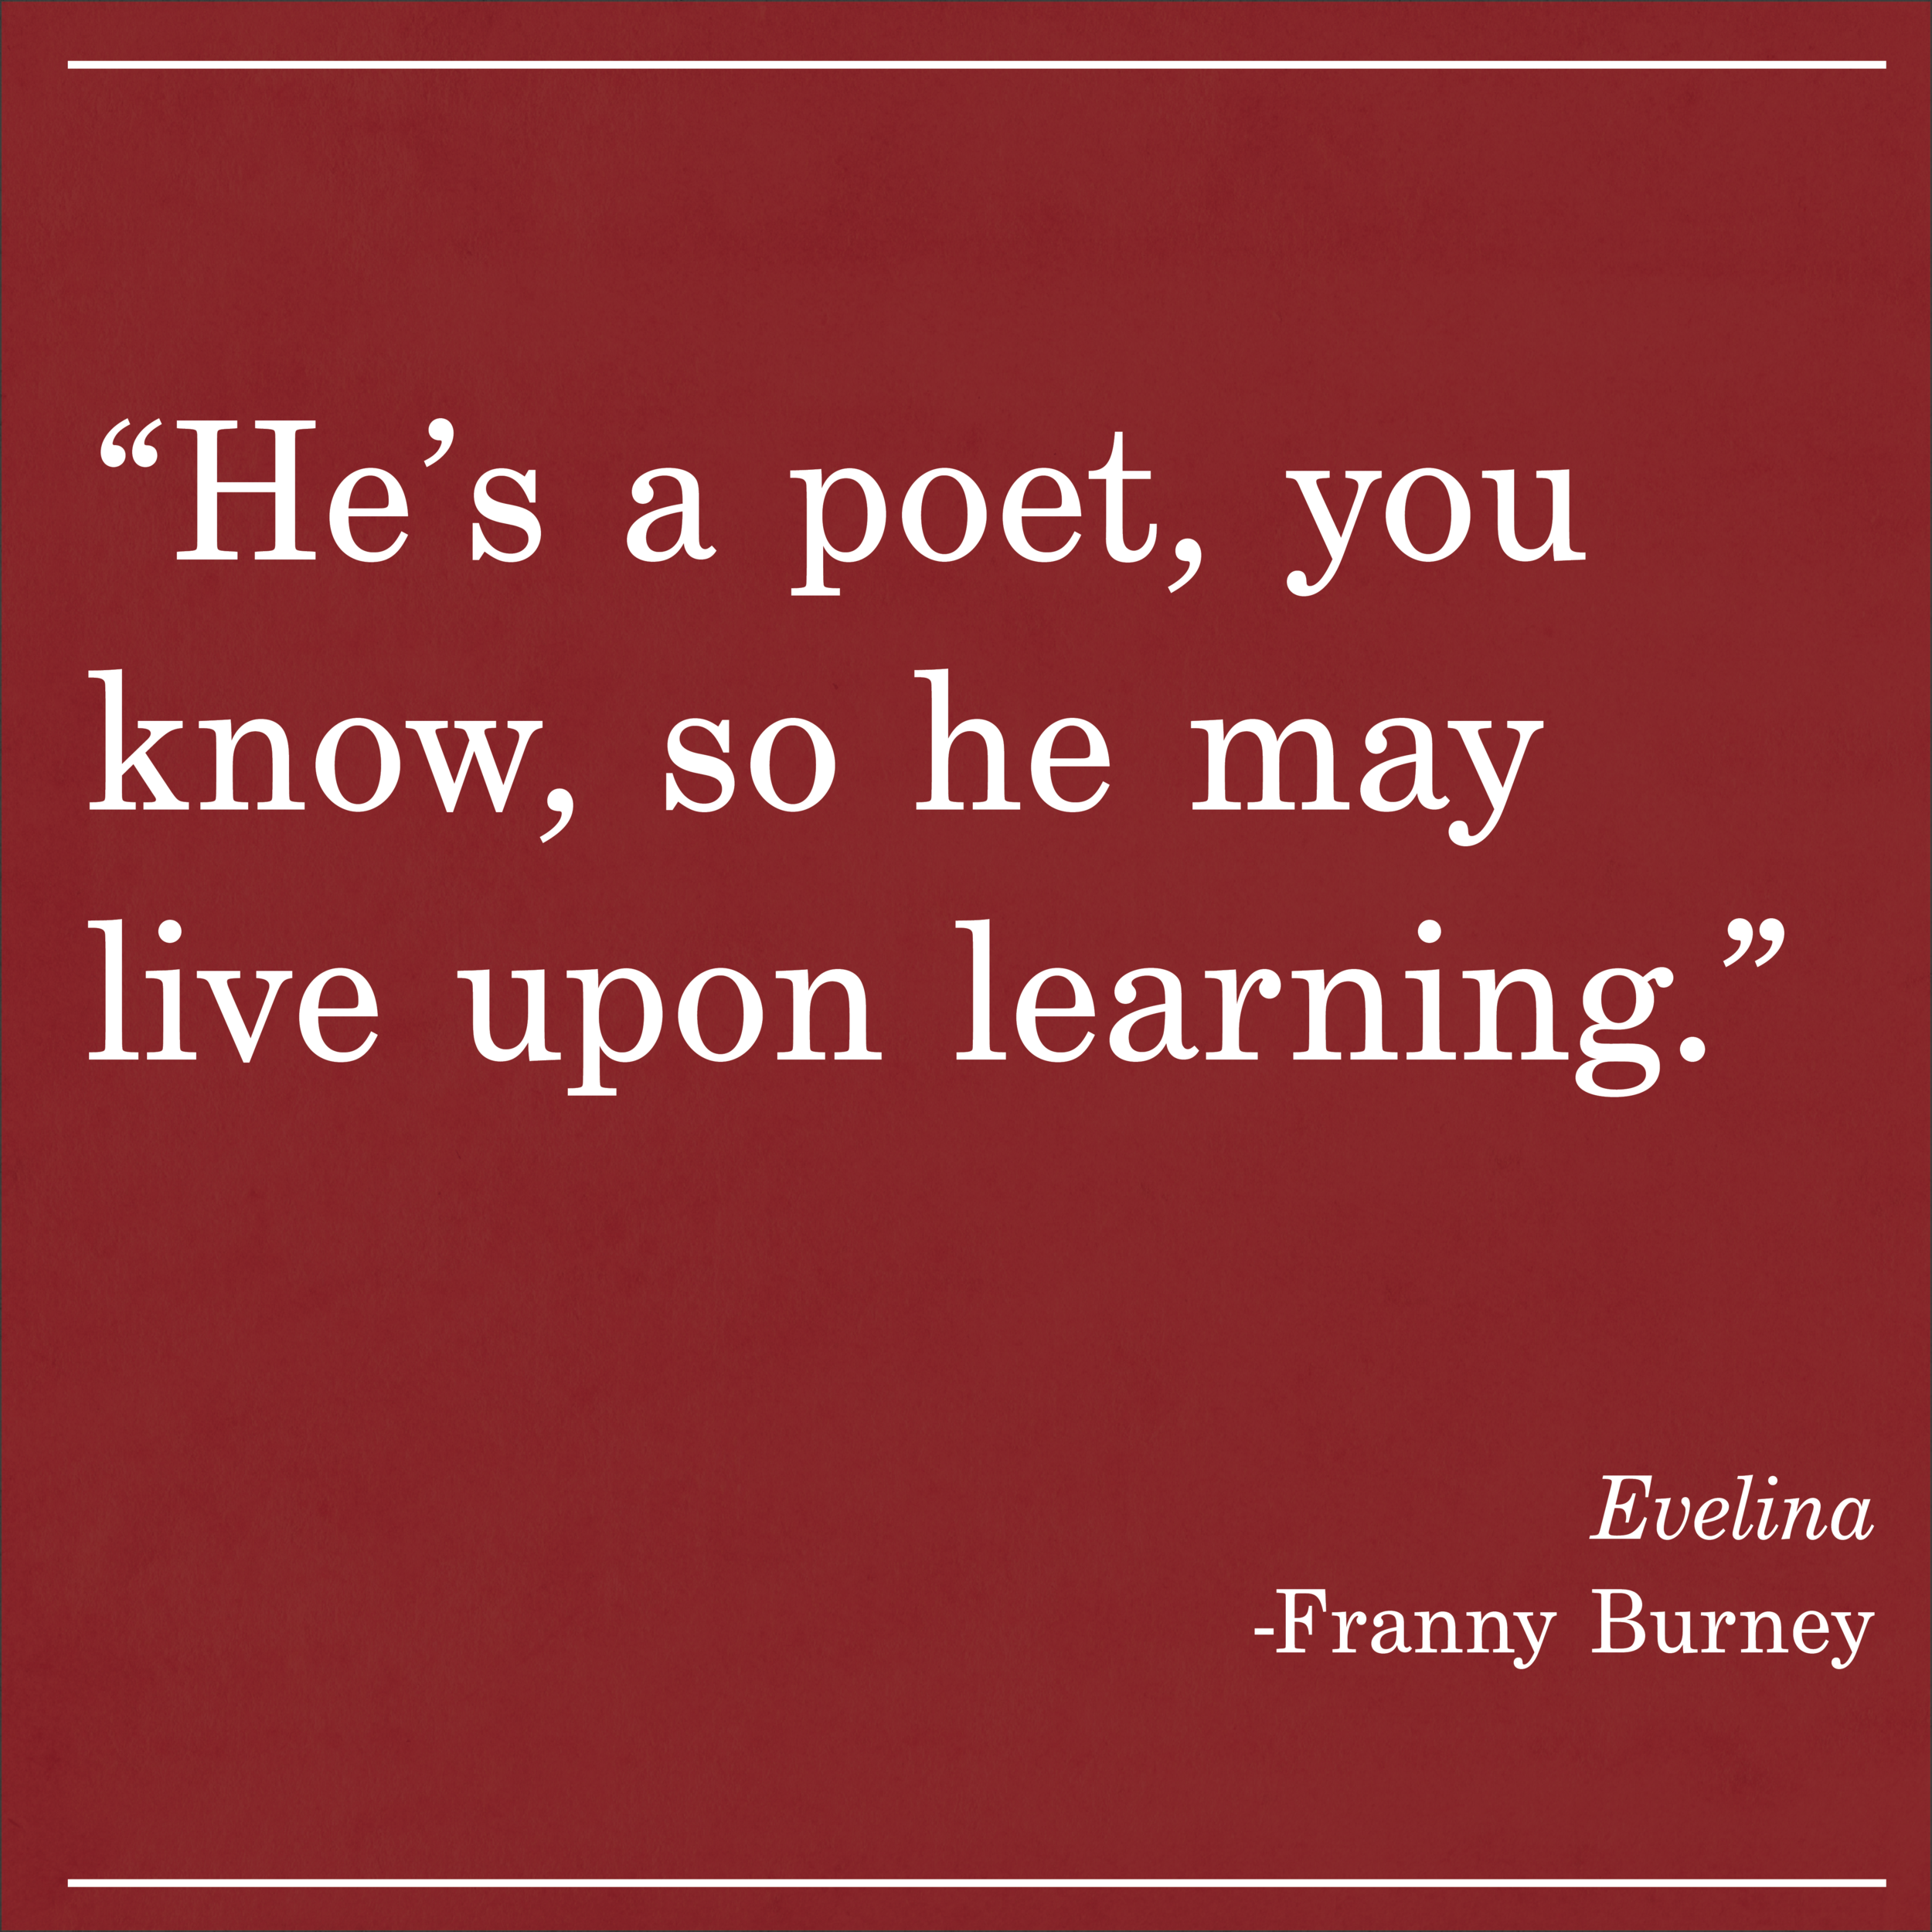 Daily Quote Evelina Franny Burney